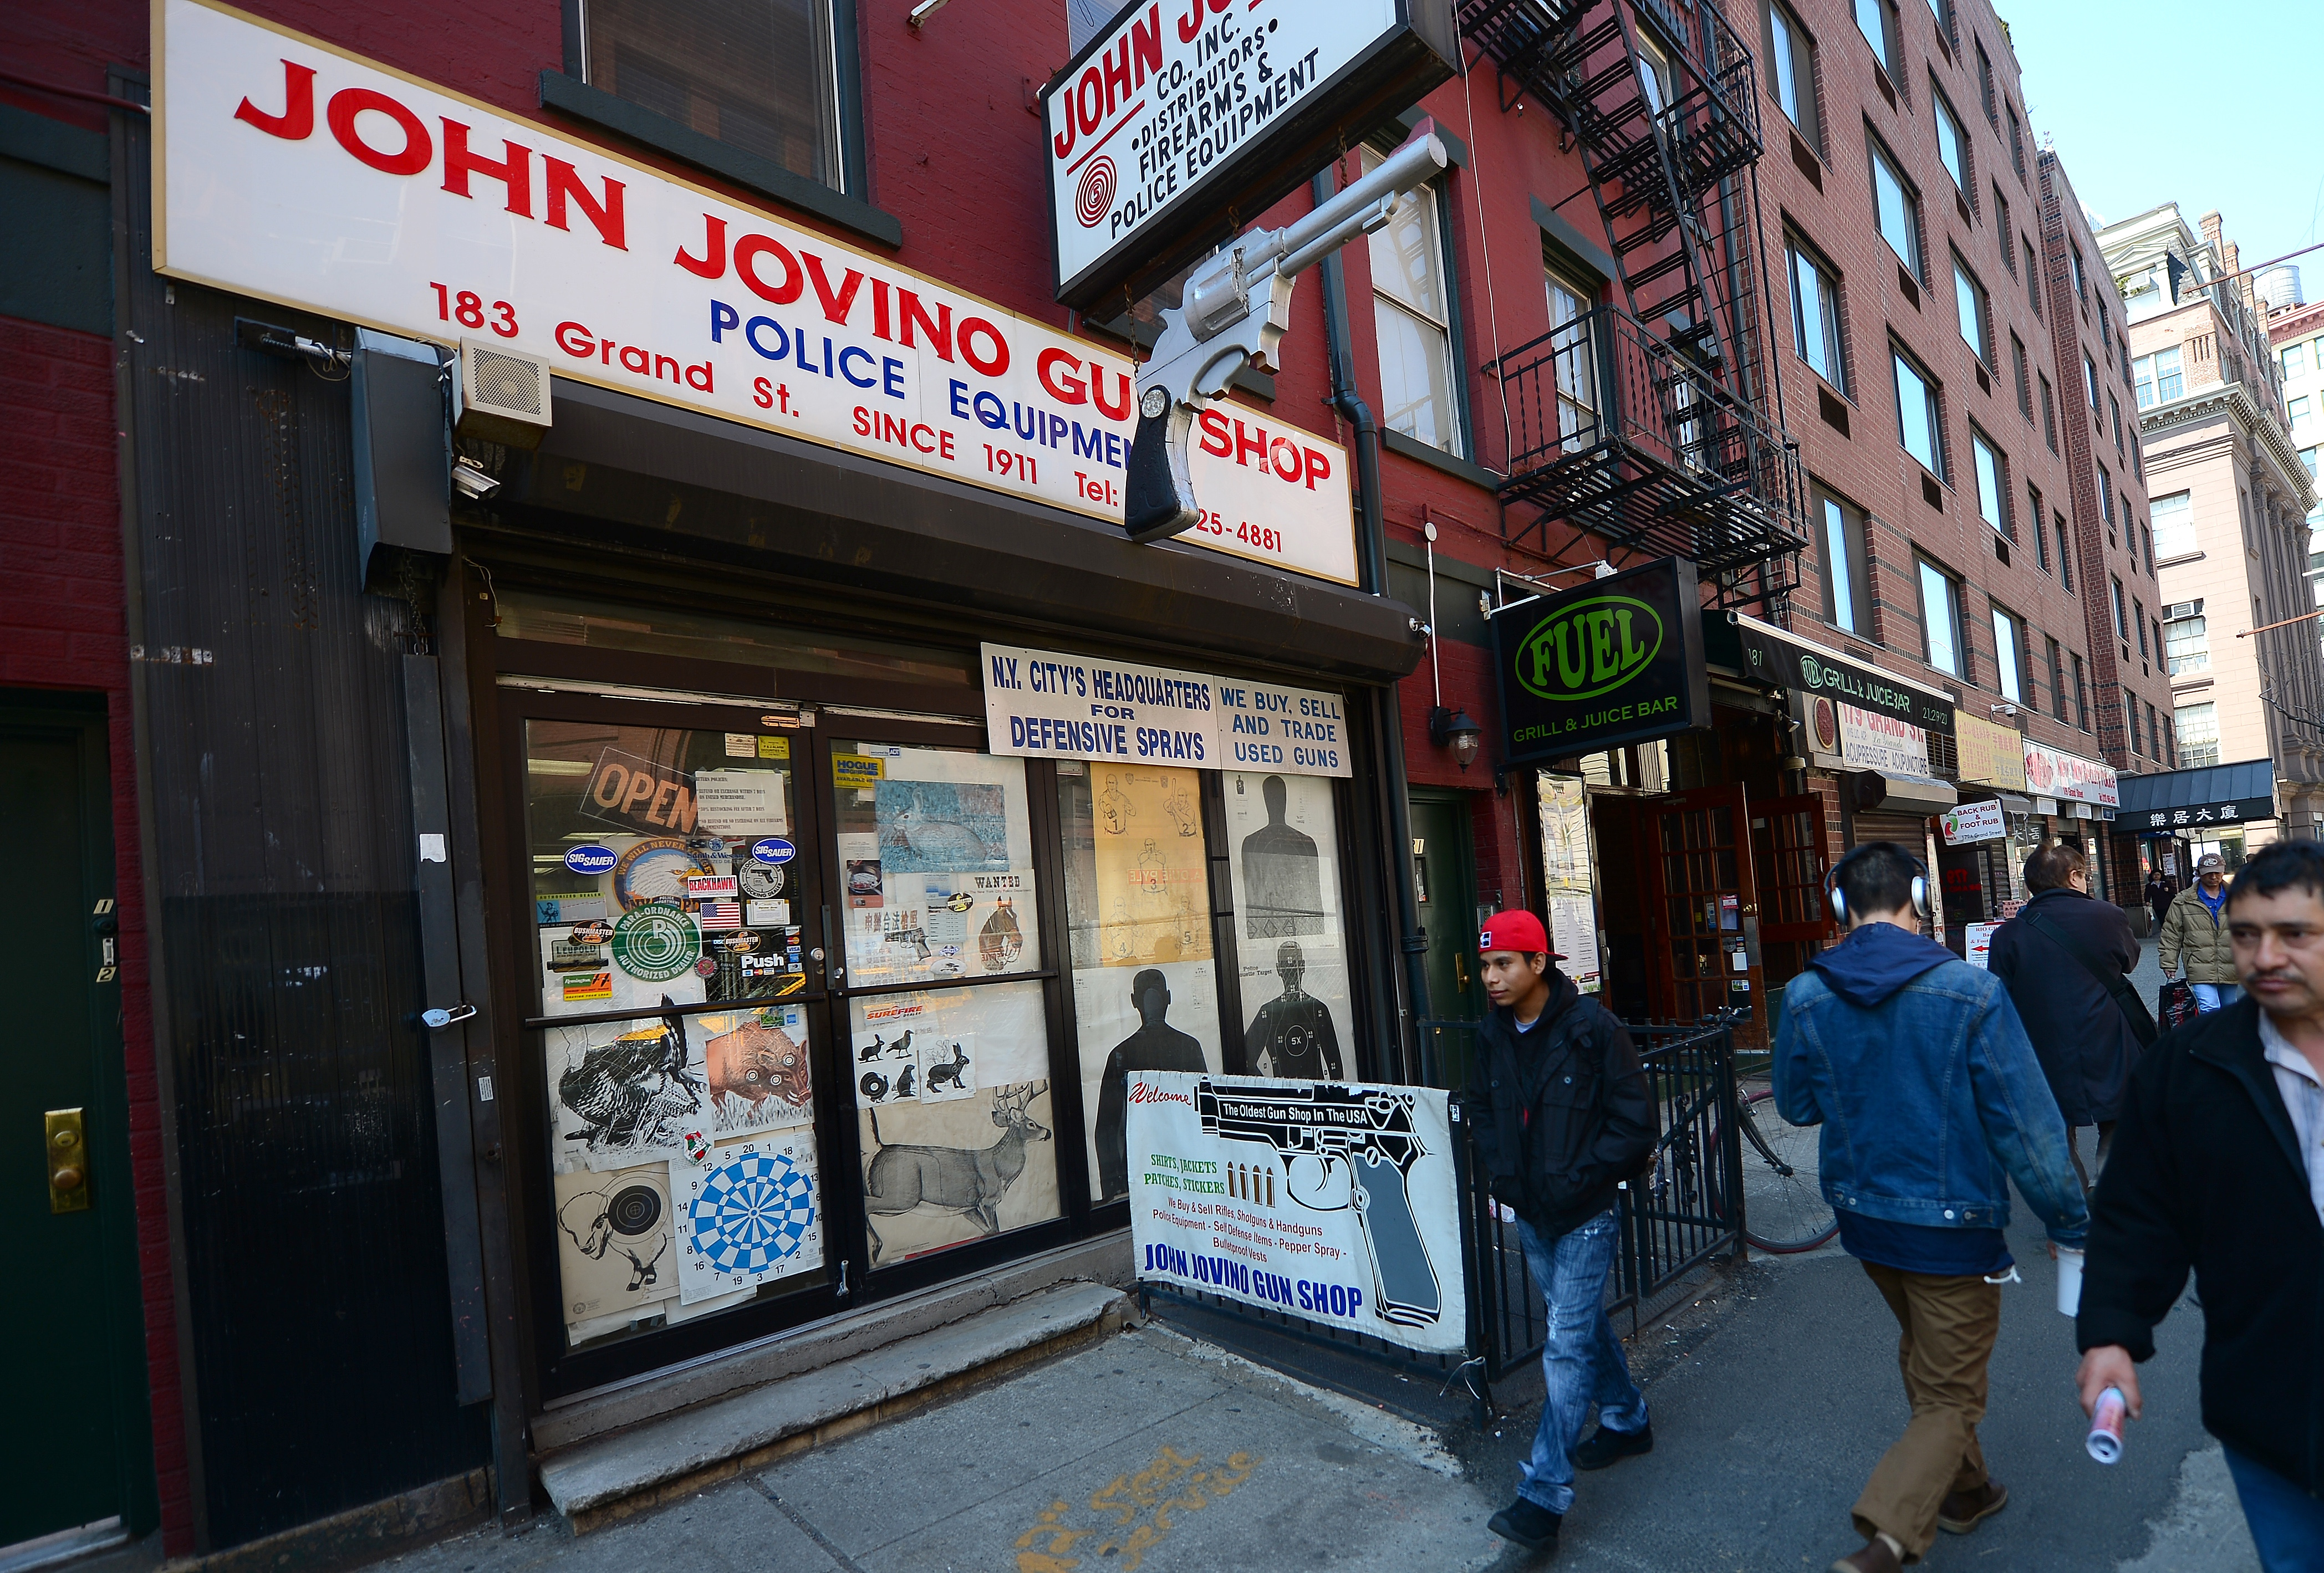 People walk past John Jovino gunshop, the oldest gun retailer in New York City, which claims to be the oldest gun shop in the US, in Manhattan's Little Italy in New York on April 8, 2013. US Congress returns to work on April 8 after a spring-break recess with two issues reaching critical stages, a gun safety legislation in the wake of the Sandy Hook Elementary School shooting and a comprehensive overhaul of the nation's immigration system. (EMMANUEL DUNAND/AFP via Getty Images)